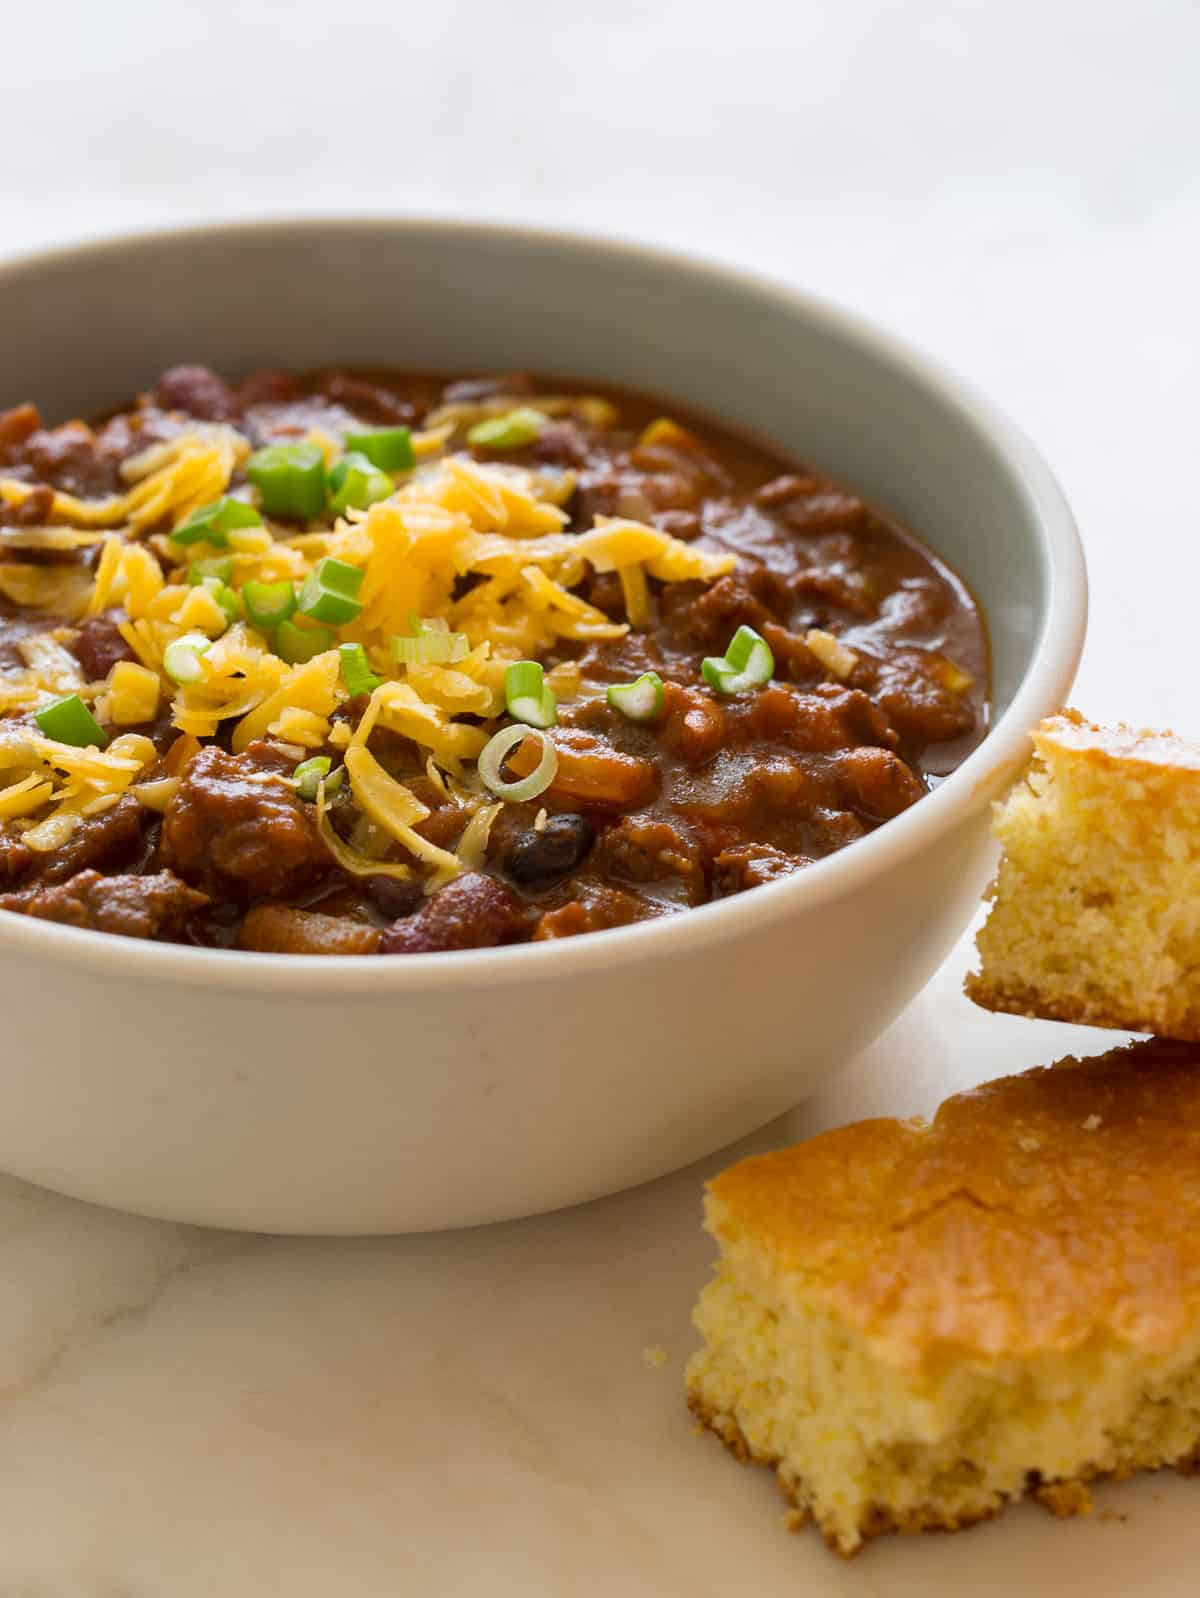 Kitchen Sink Chili Chili recipe